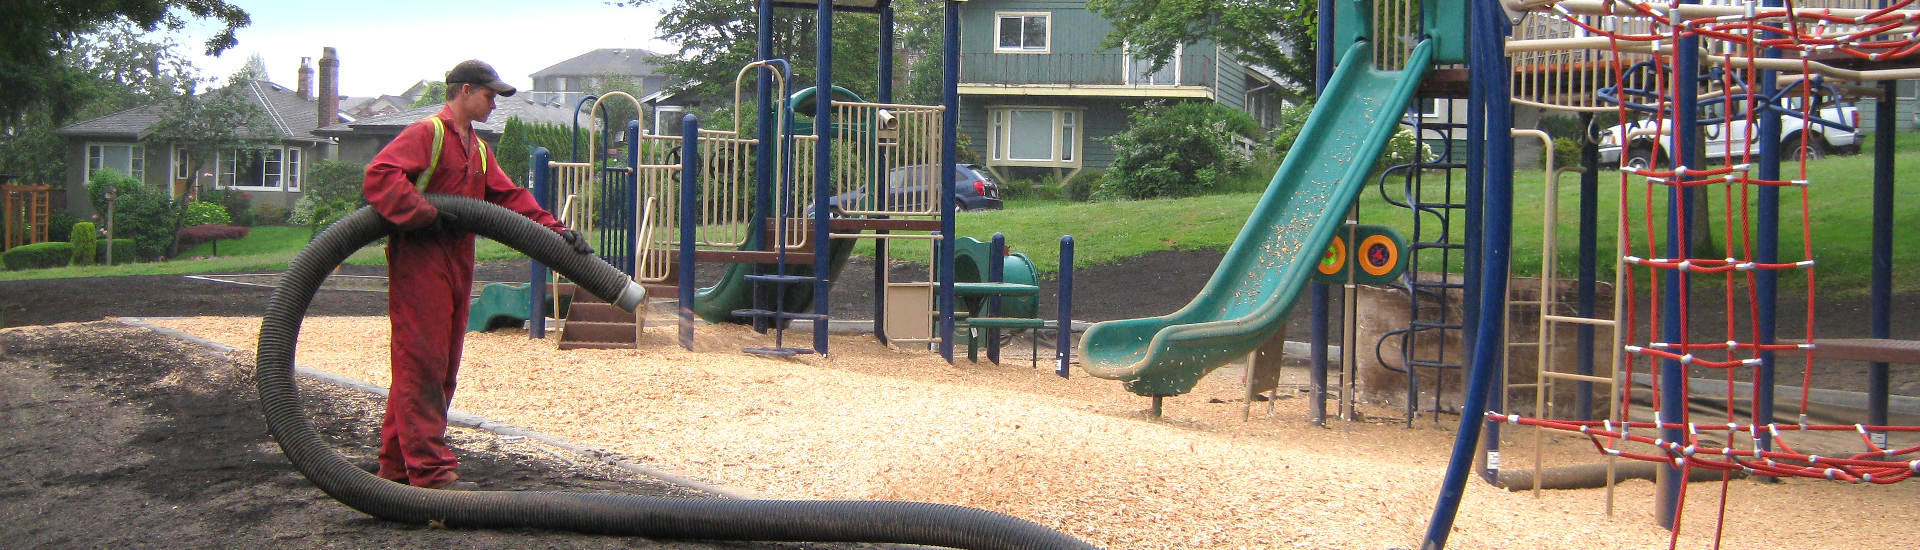 Playground wood chips as ground cover